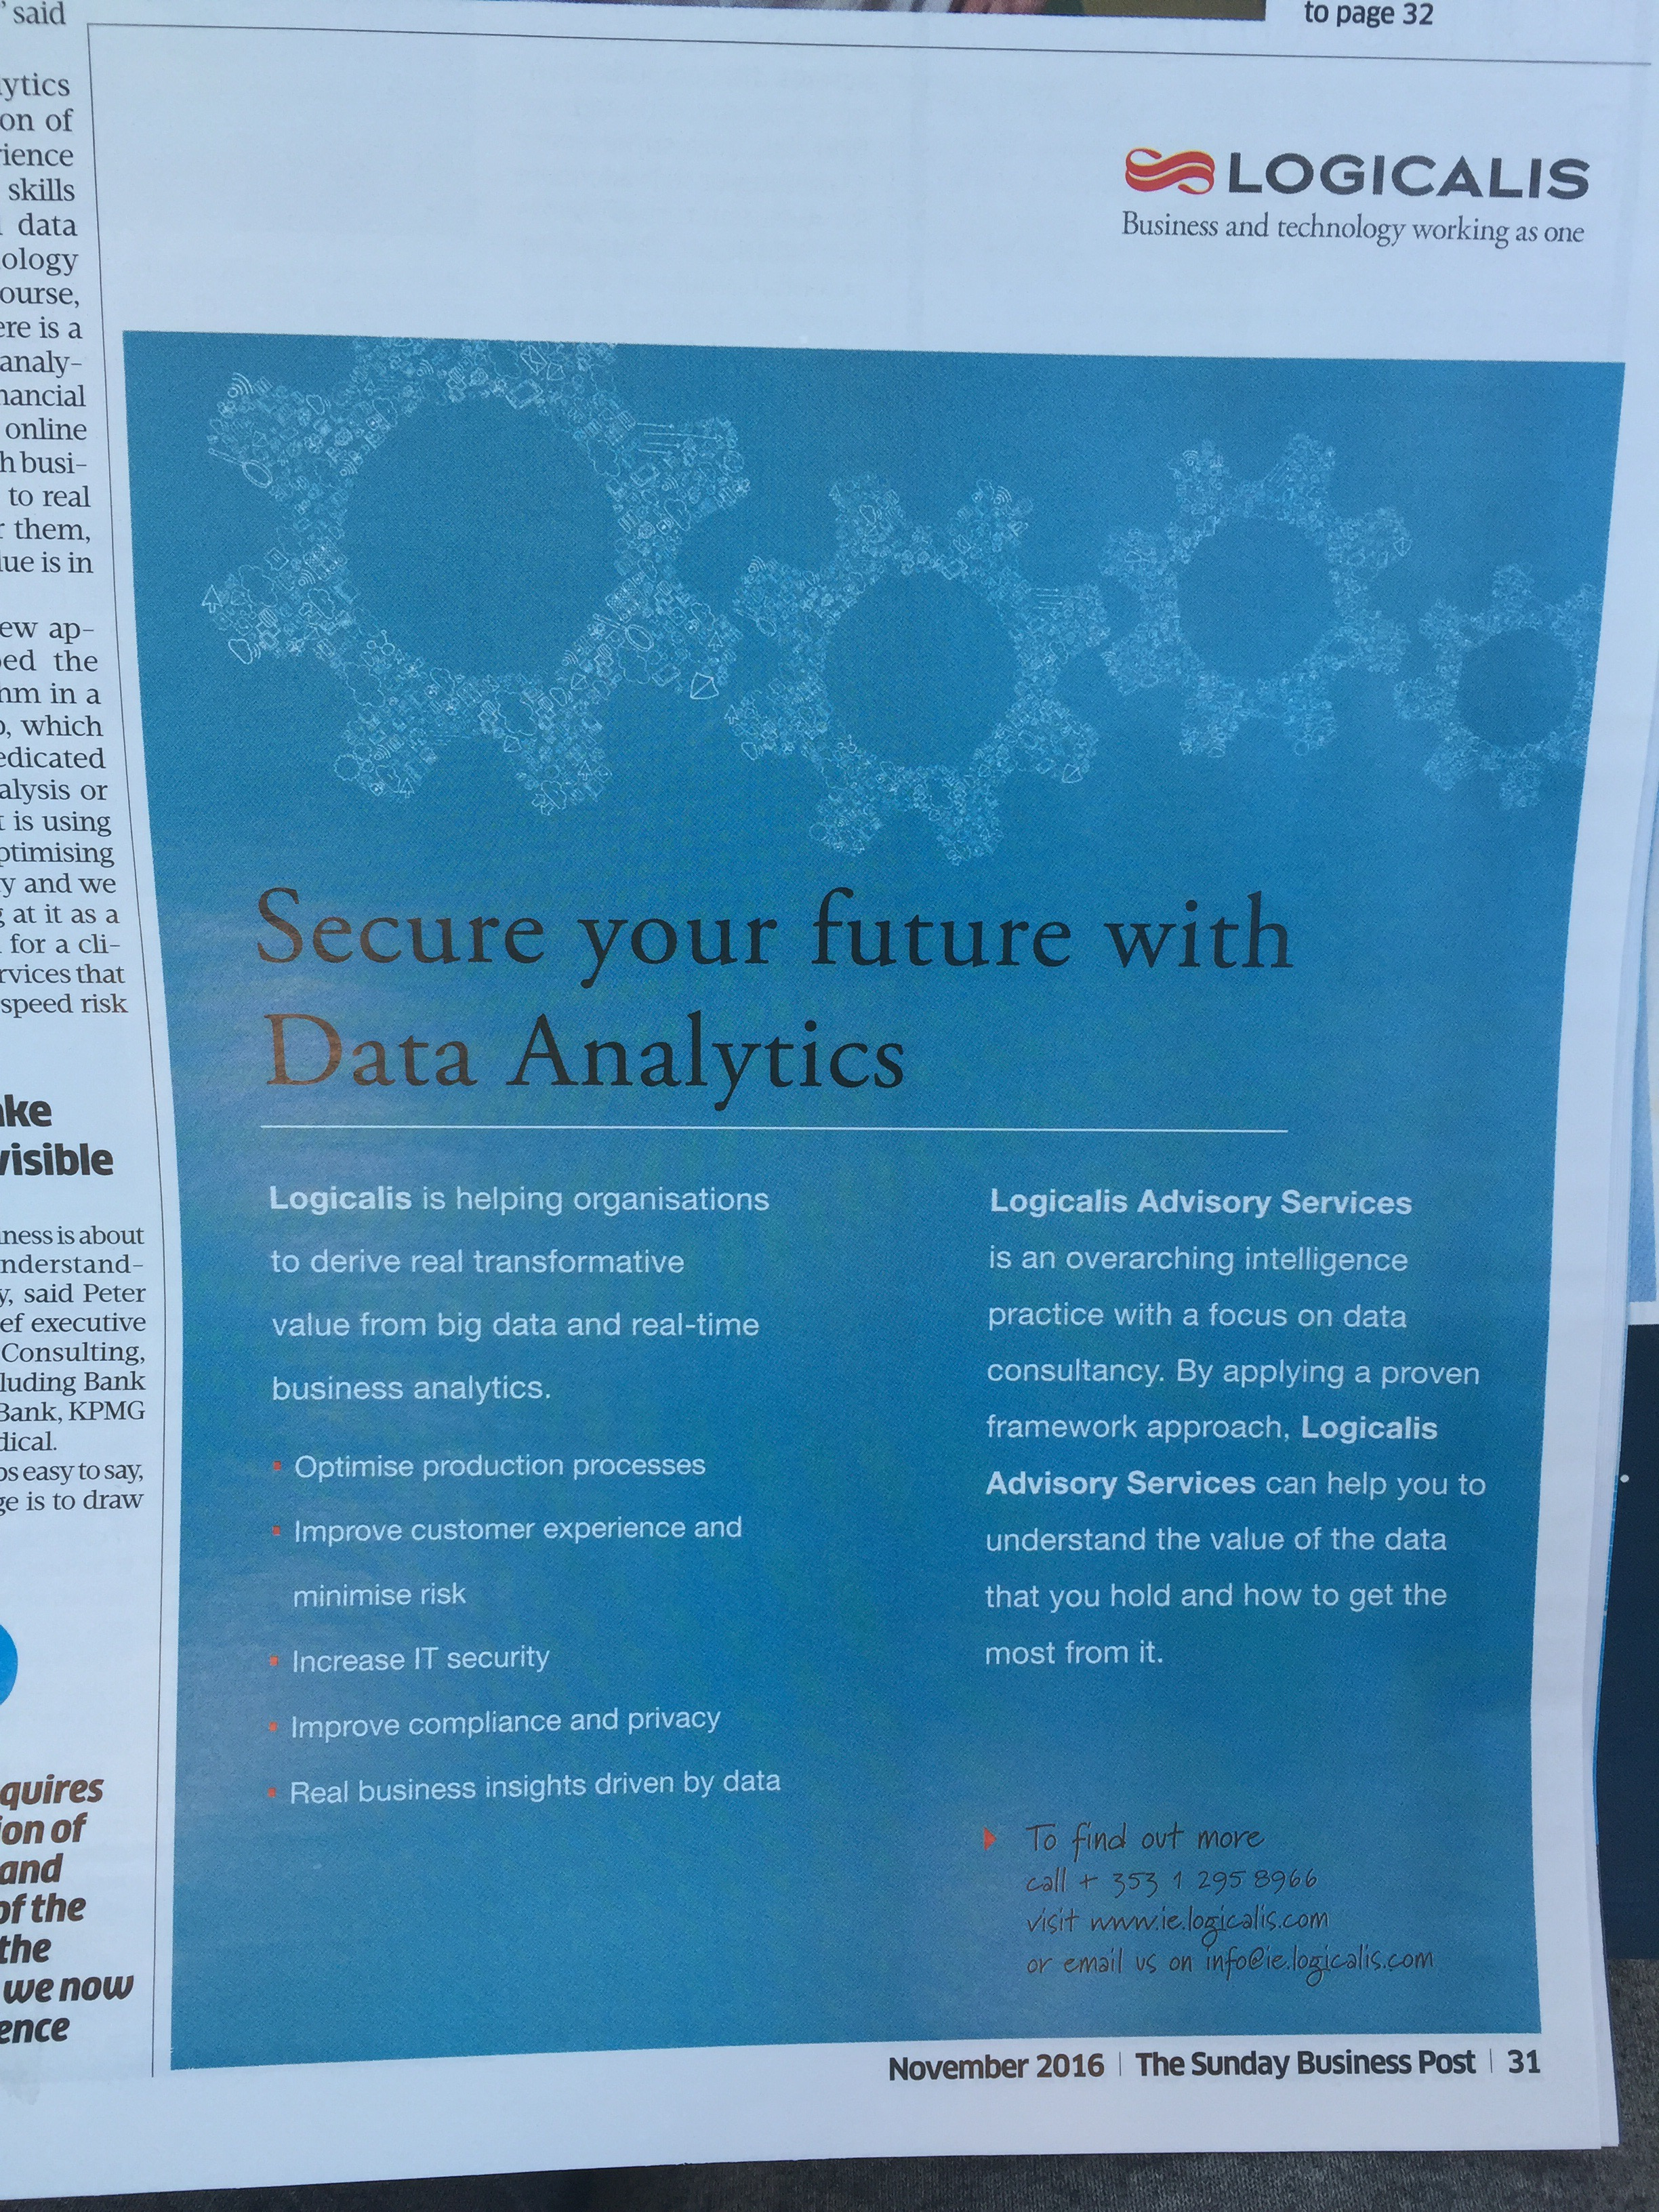 Logicalis – secure your future with data analytics